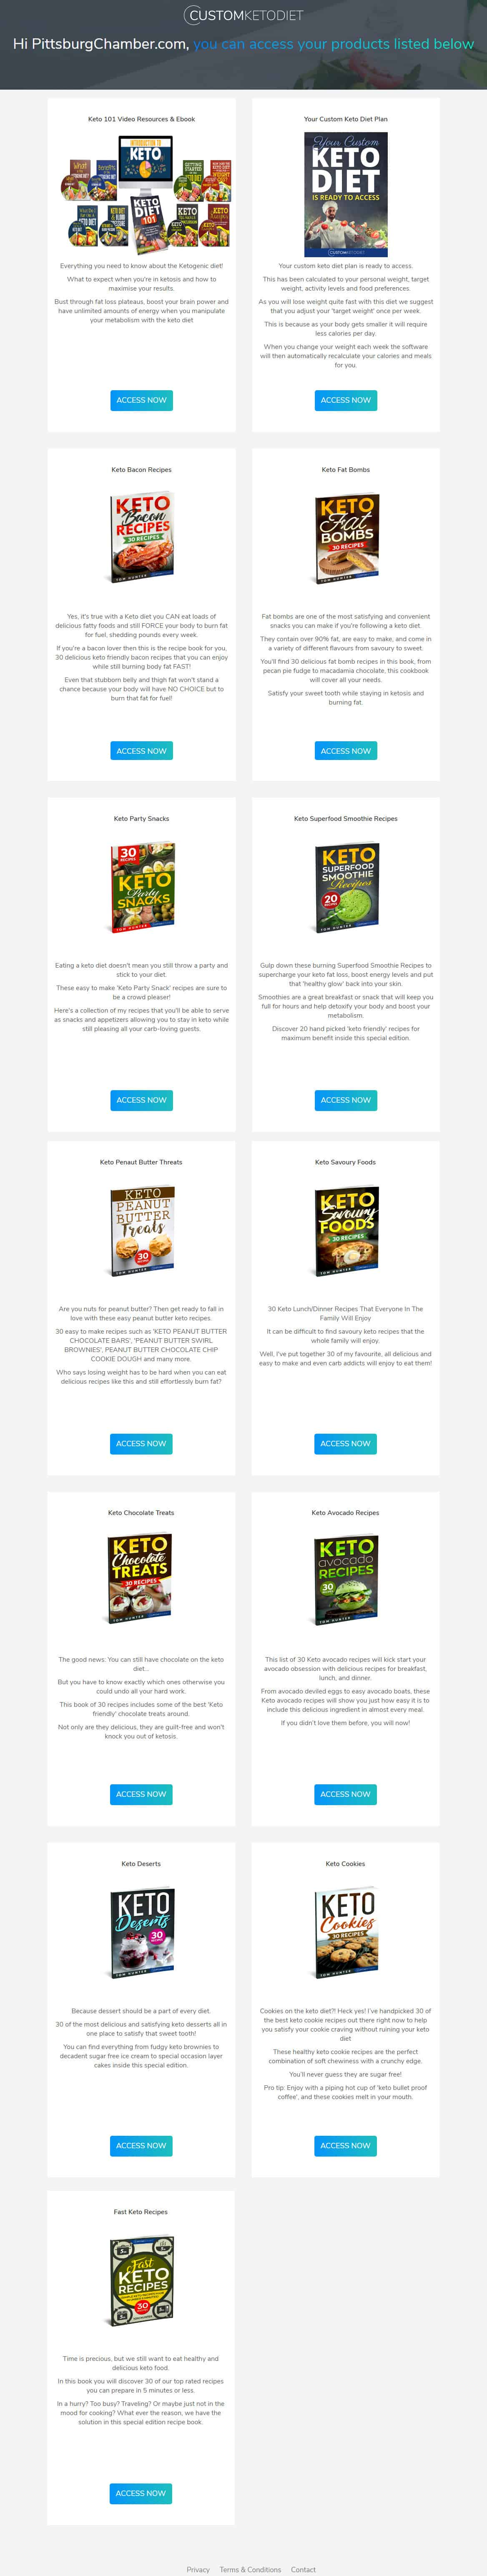 Plan Custom Keto Diet  Deals Refurbished April  2020